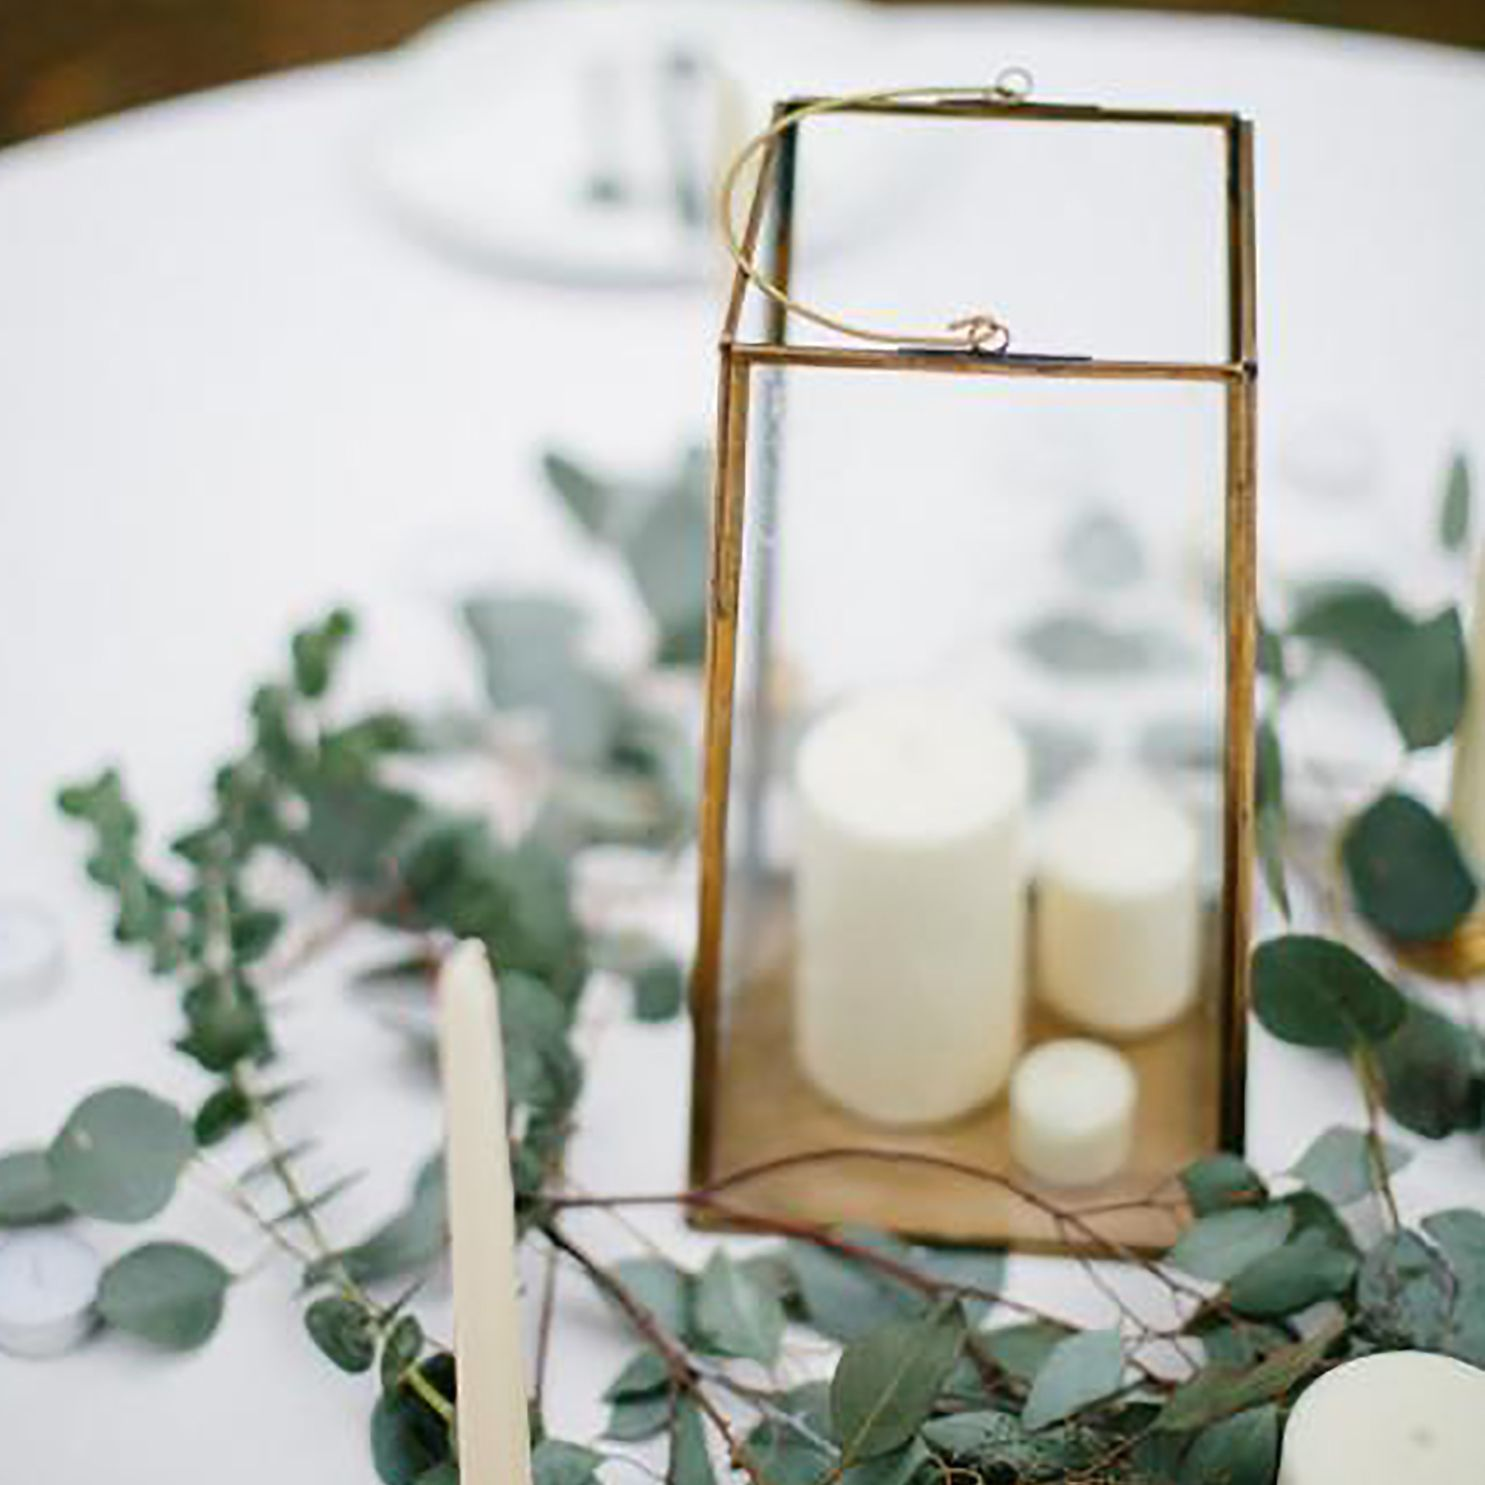 Flower centerpieces wedding - Wedding floral centerpieces - Wedding  centerpieces diy… in 2020 | Flower centerpieces wedding, Simple centerpieces,  Wedding centerpieces diy